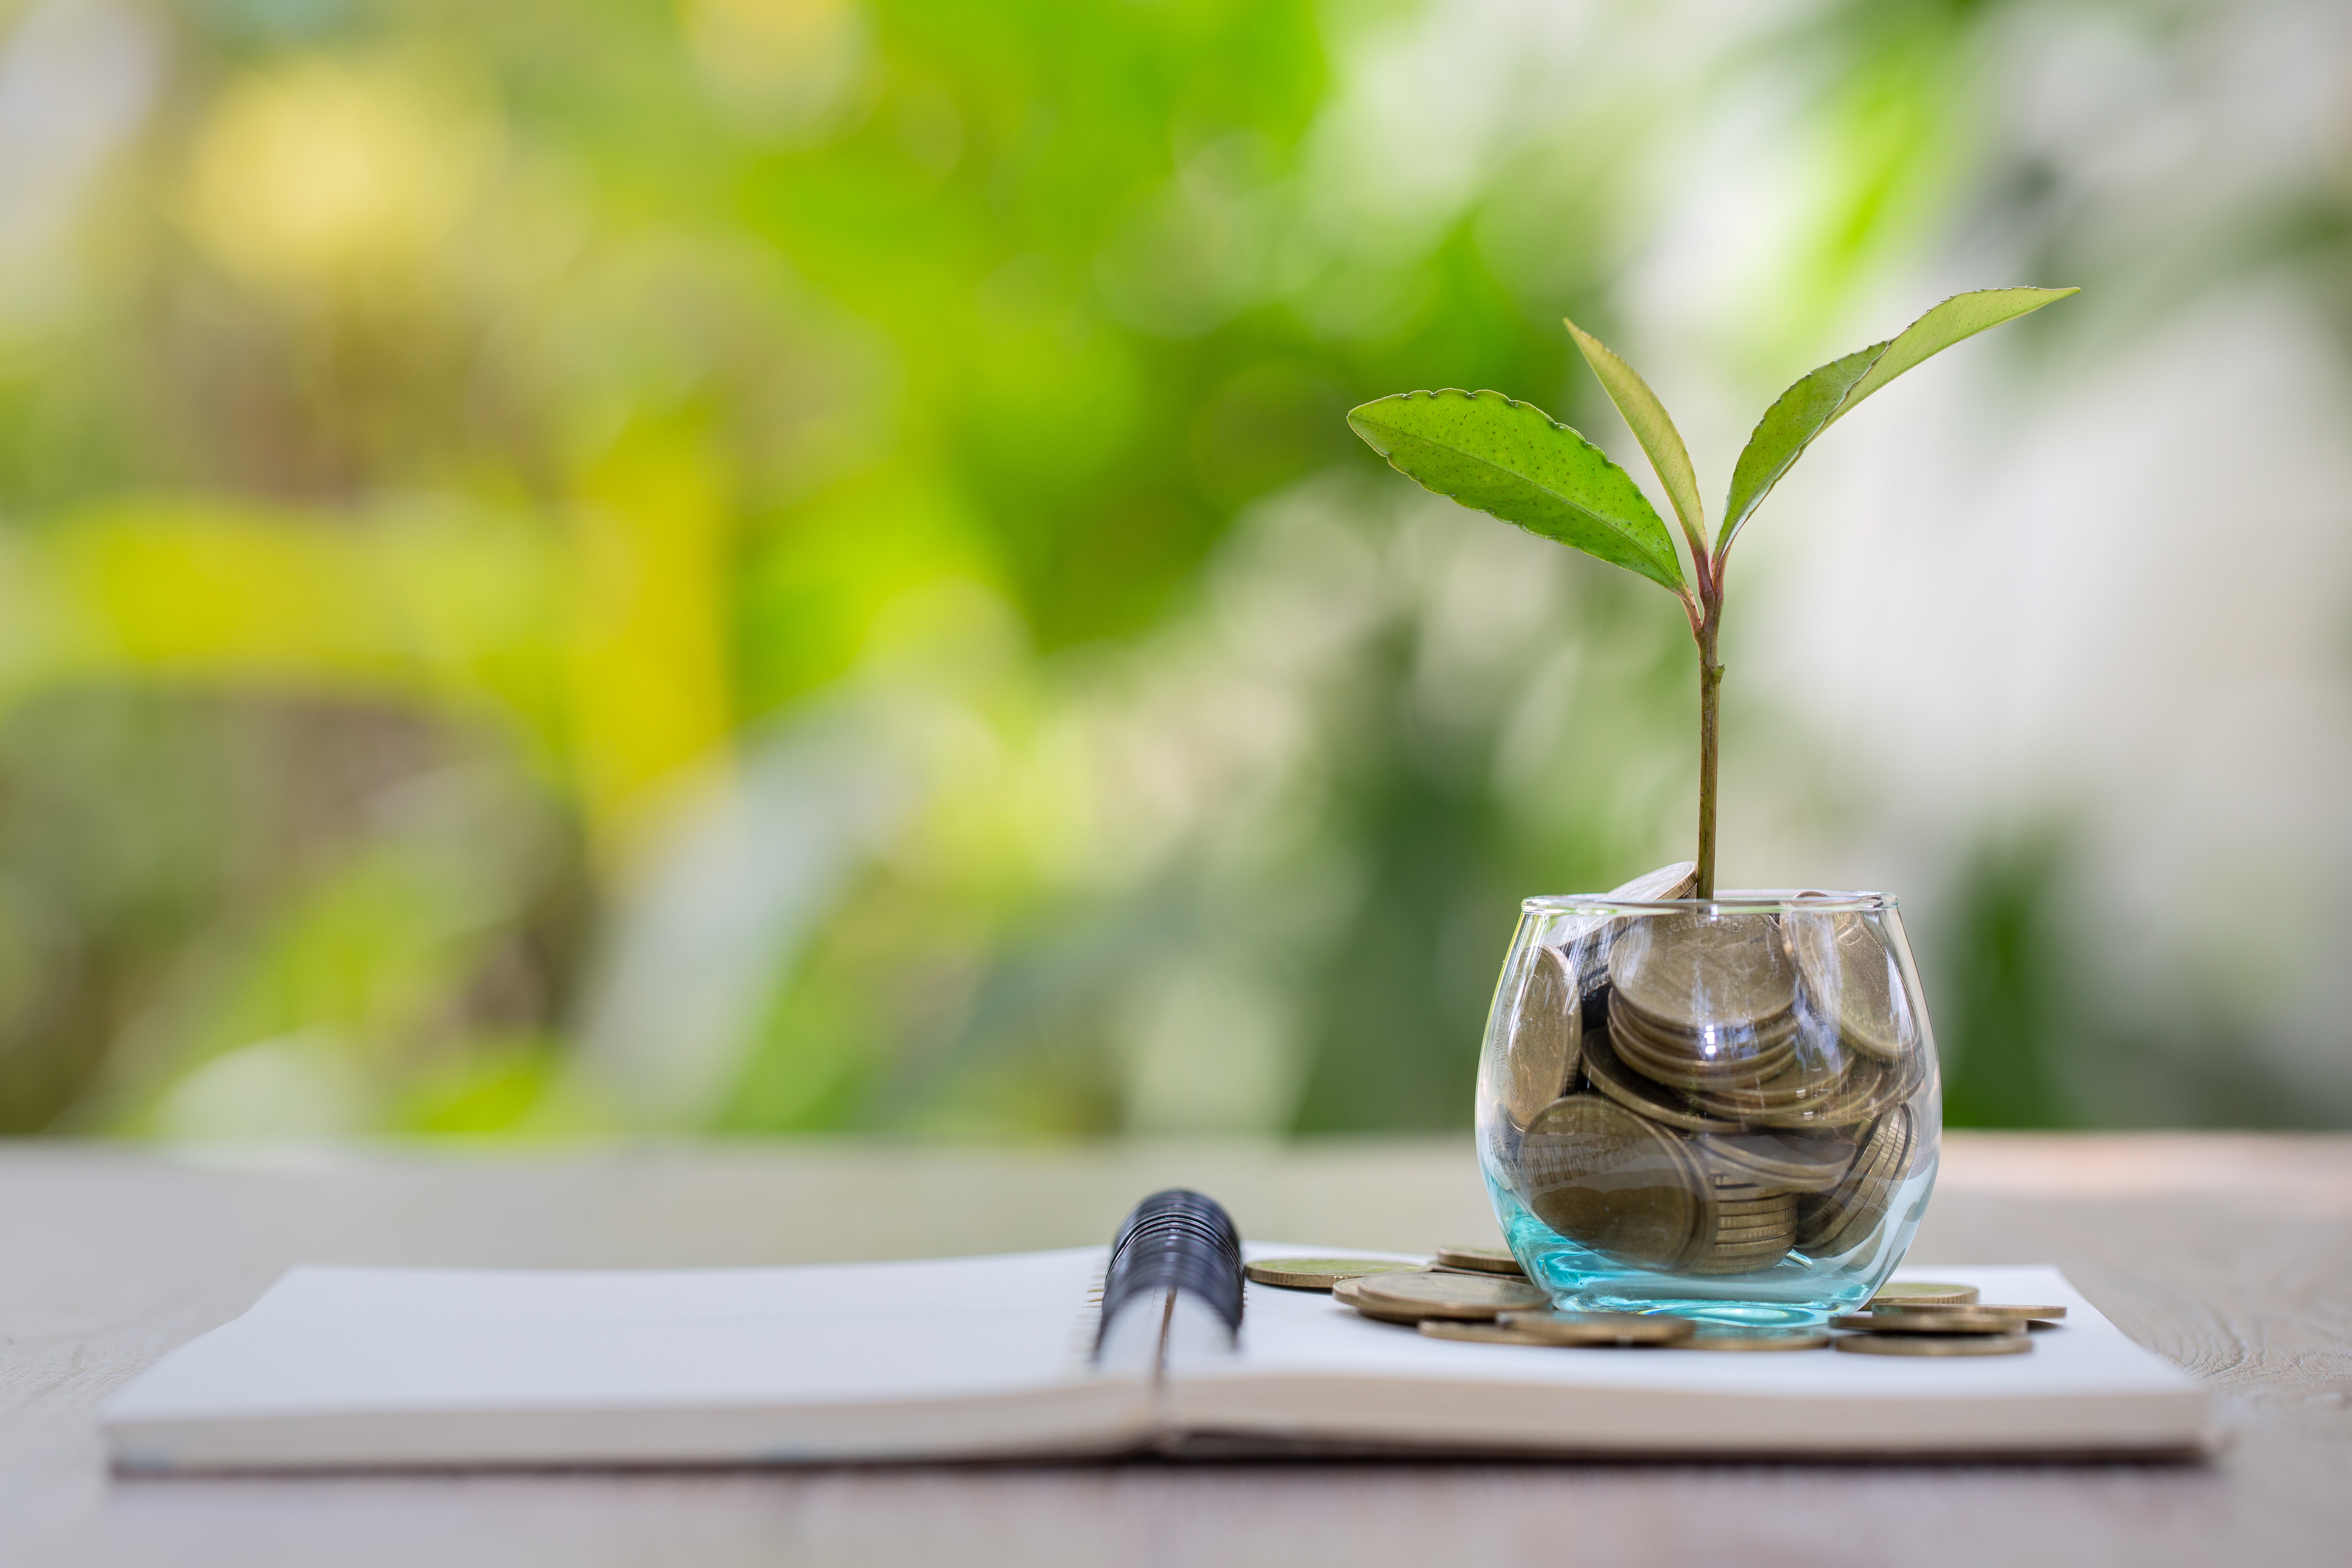 Introduction to Sustainability, Sustainable Finance and the role of Law